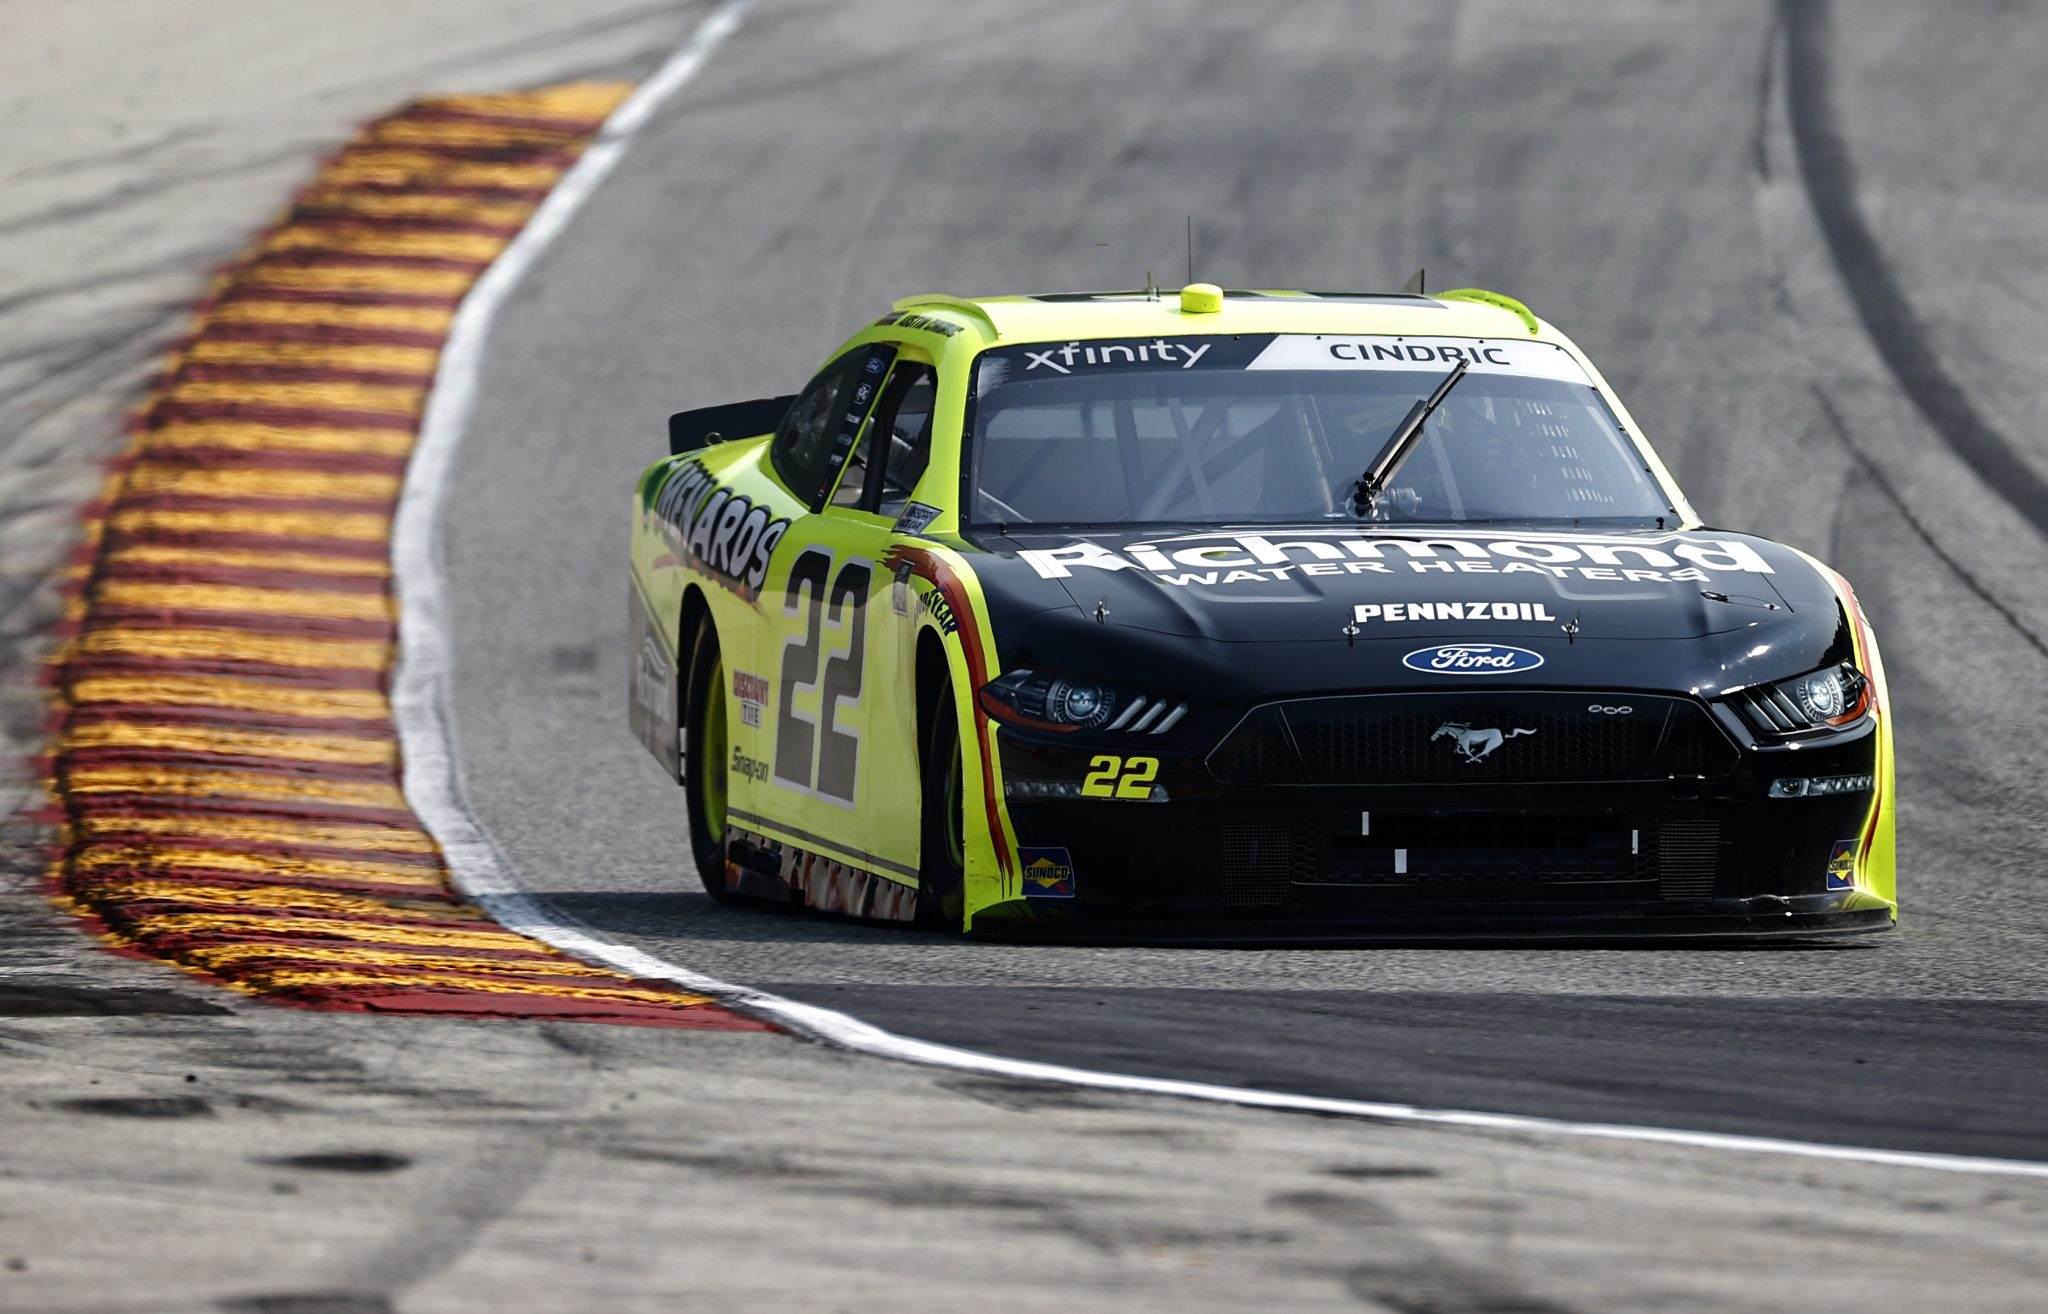 ELKHART LAKE, WISCONSIN - JULY 02: Austin Cindric, driver of the #22 Menards/Richmond Ford, drives during practice for the NASCAR Xfinity Series Henry 180 at Road America on July 02, 2021 in Elkhart Lake, Wisconsin. (Photo by Jared C. Tilton/Getty Images) | Getty Images